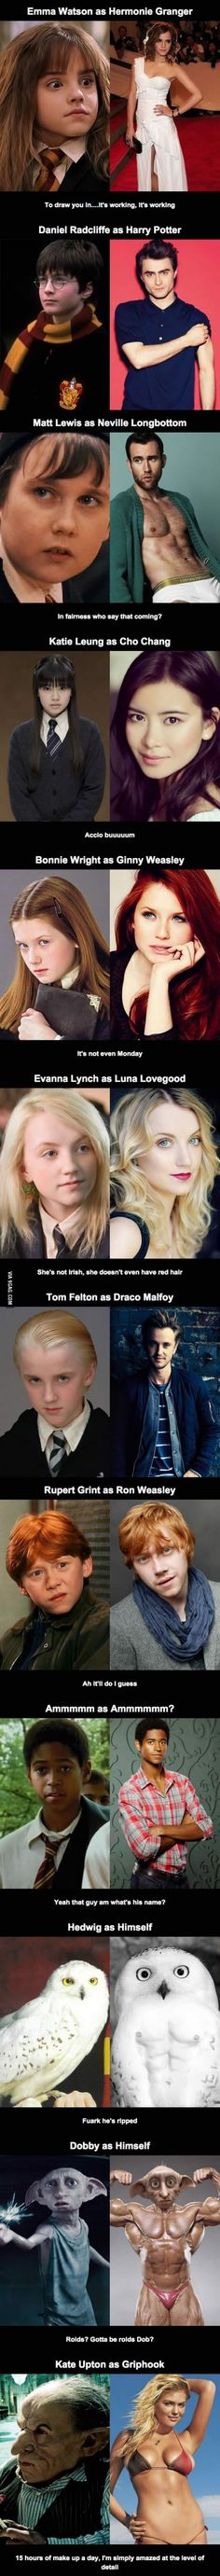 Harry Potter and glorious puberty